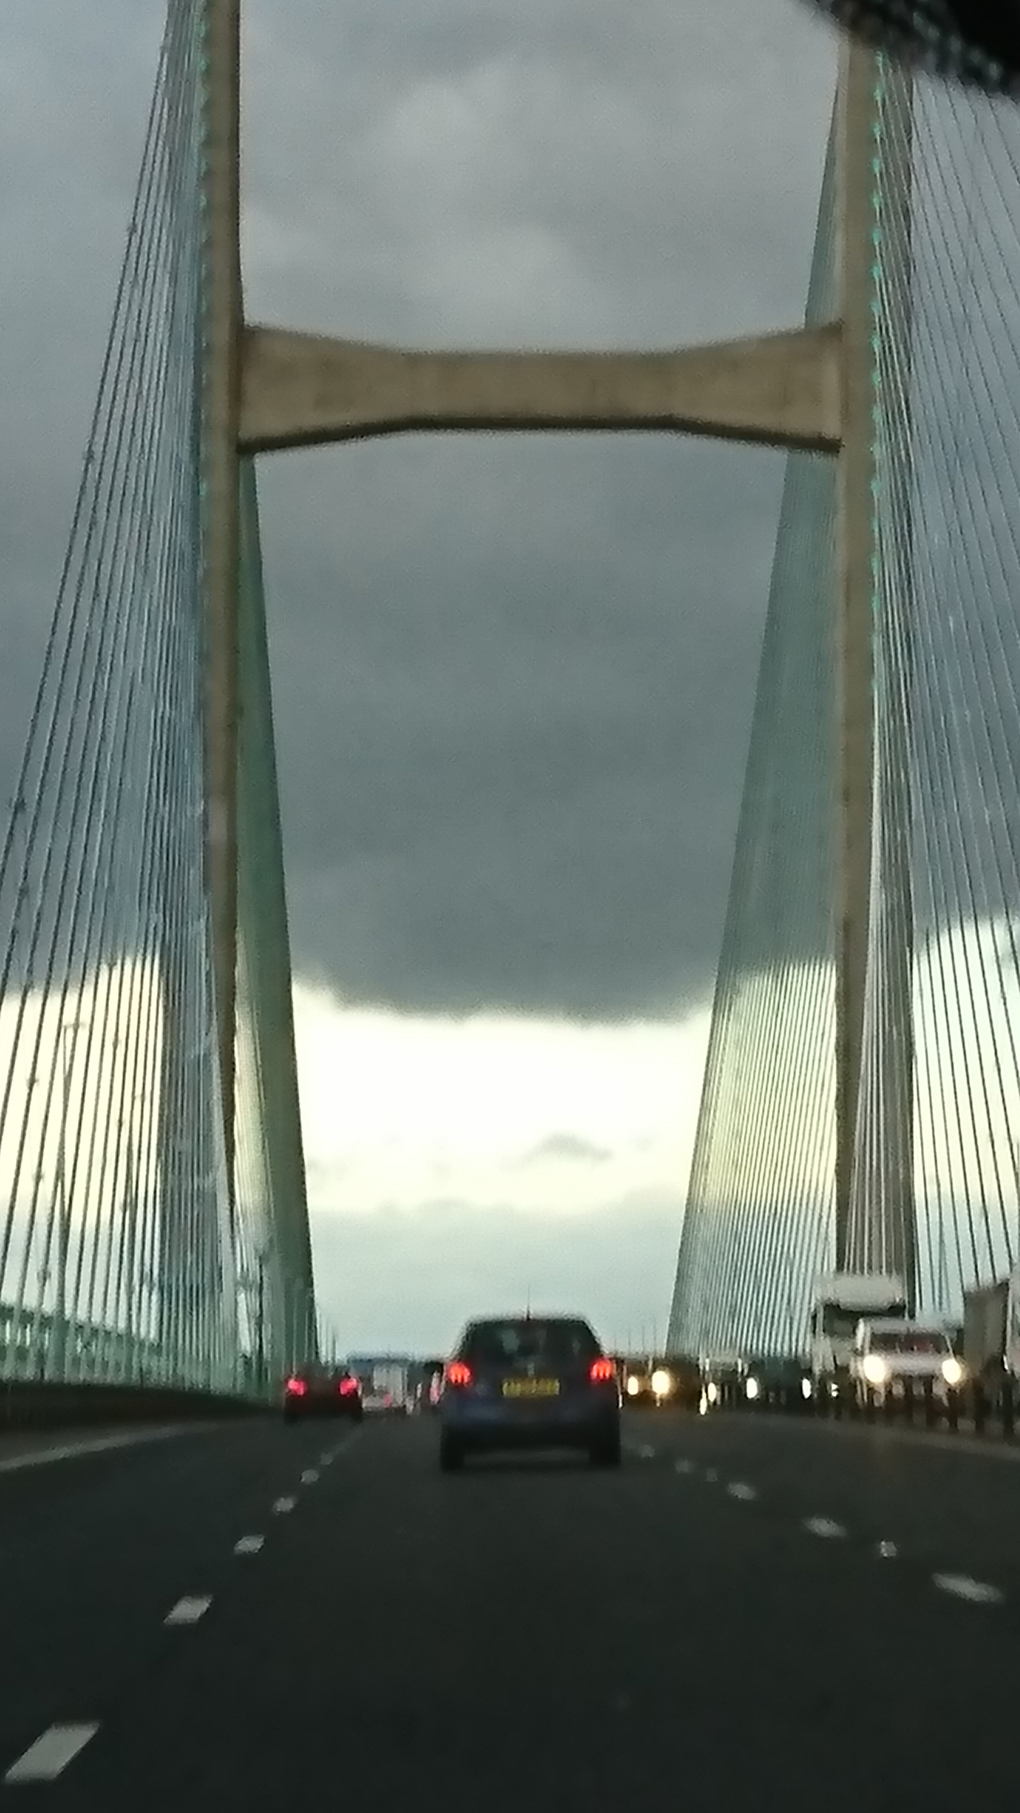 Heading home after house hunting we et this sight as we reached the Severn Bridge heading to Bristol - a threatening sight of a heavy huge black cloud practically covering the road ahead. Was this a portent of things to come!!! I hope not.